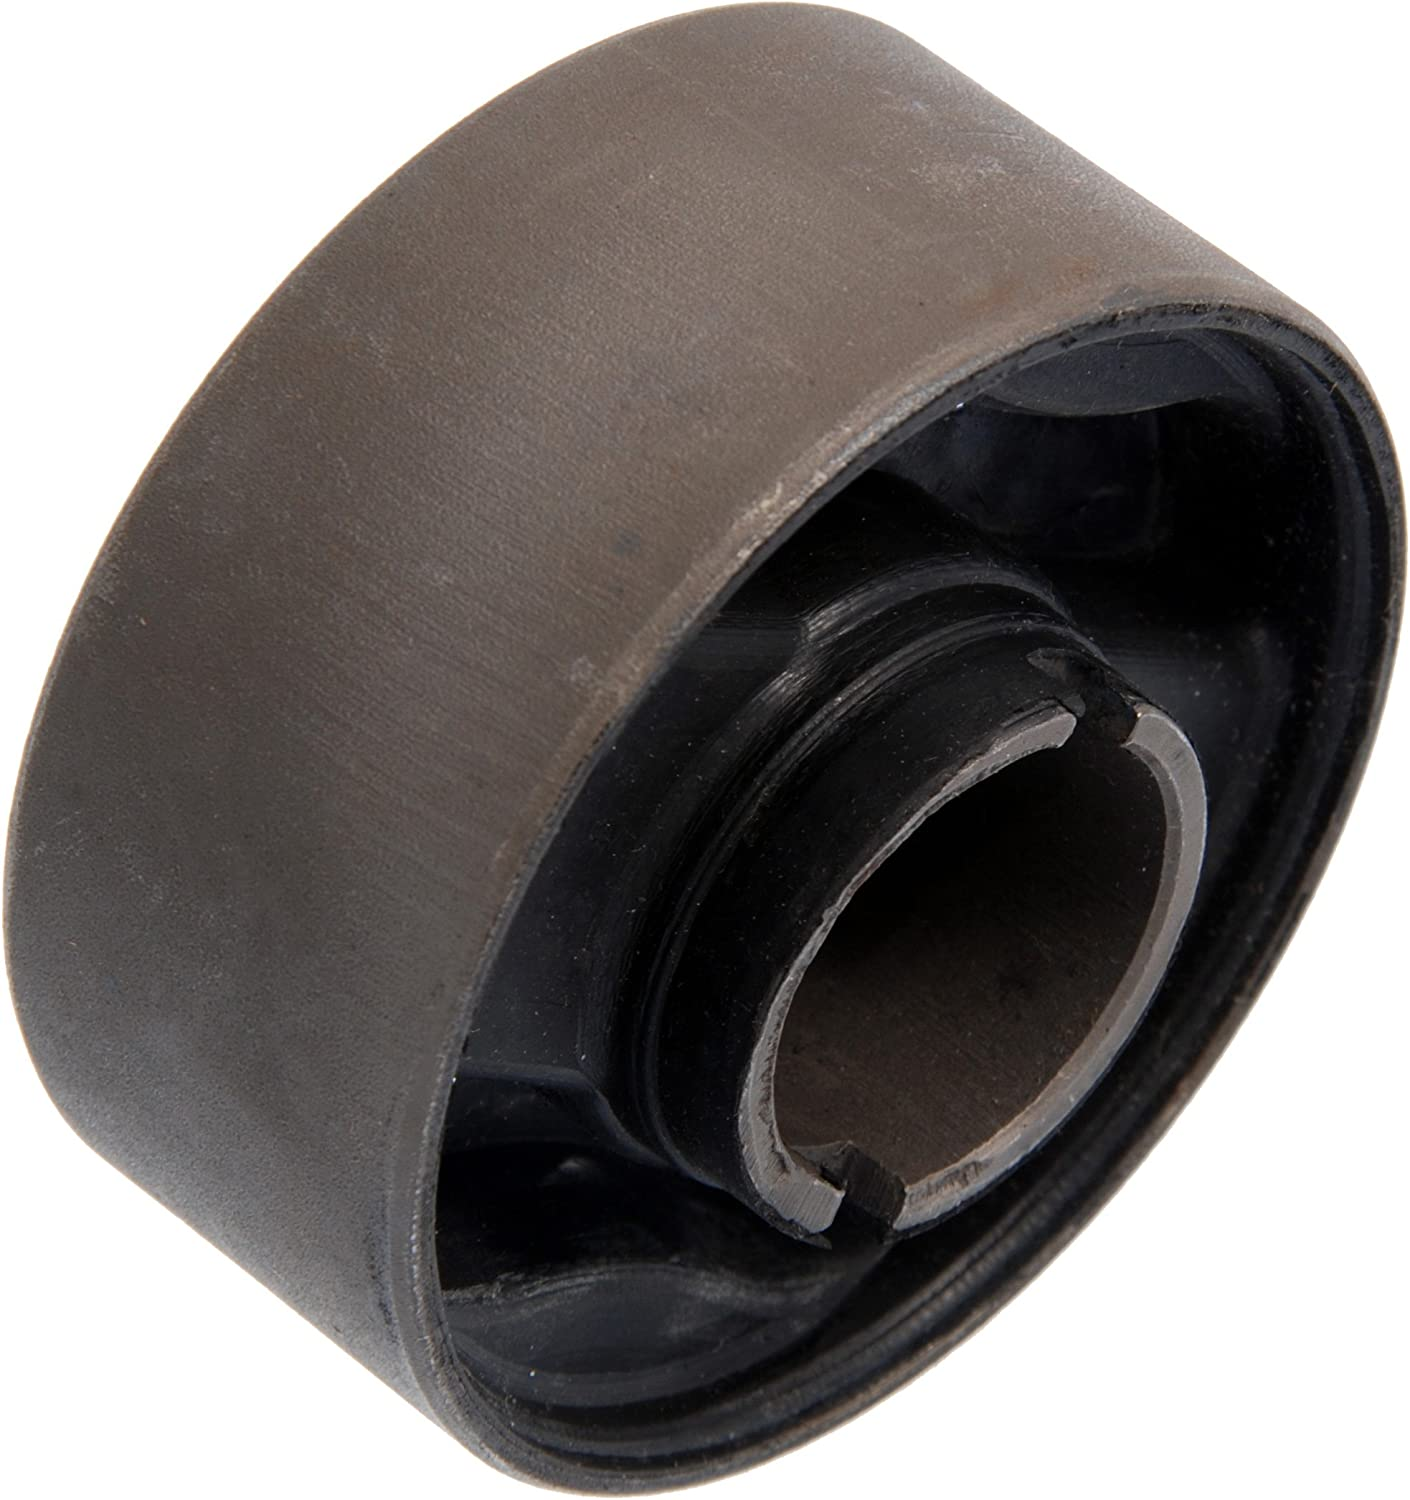 554764N211 - Arm Bushing for For San Max 86% OFF Francisco Mall Differential Nissan Mount